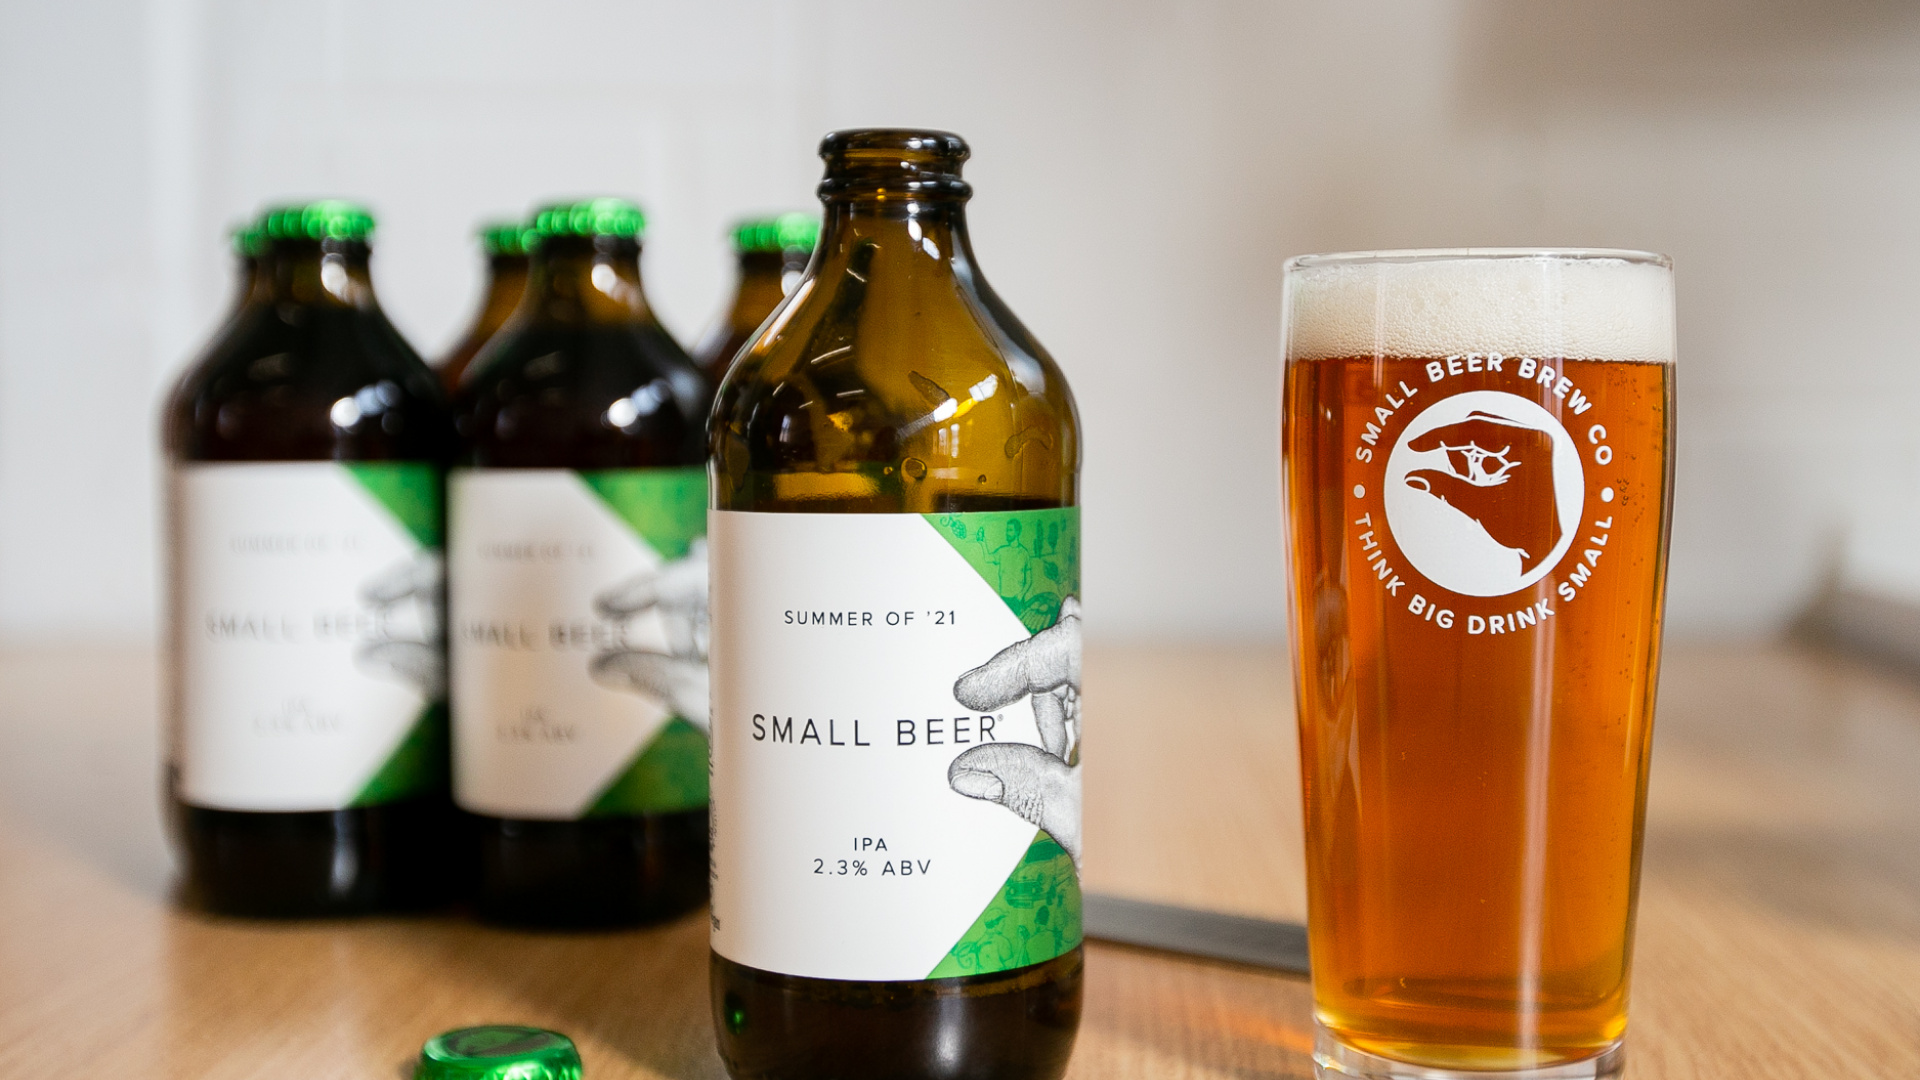 Small Beer competition